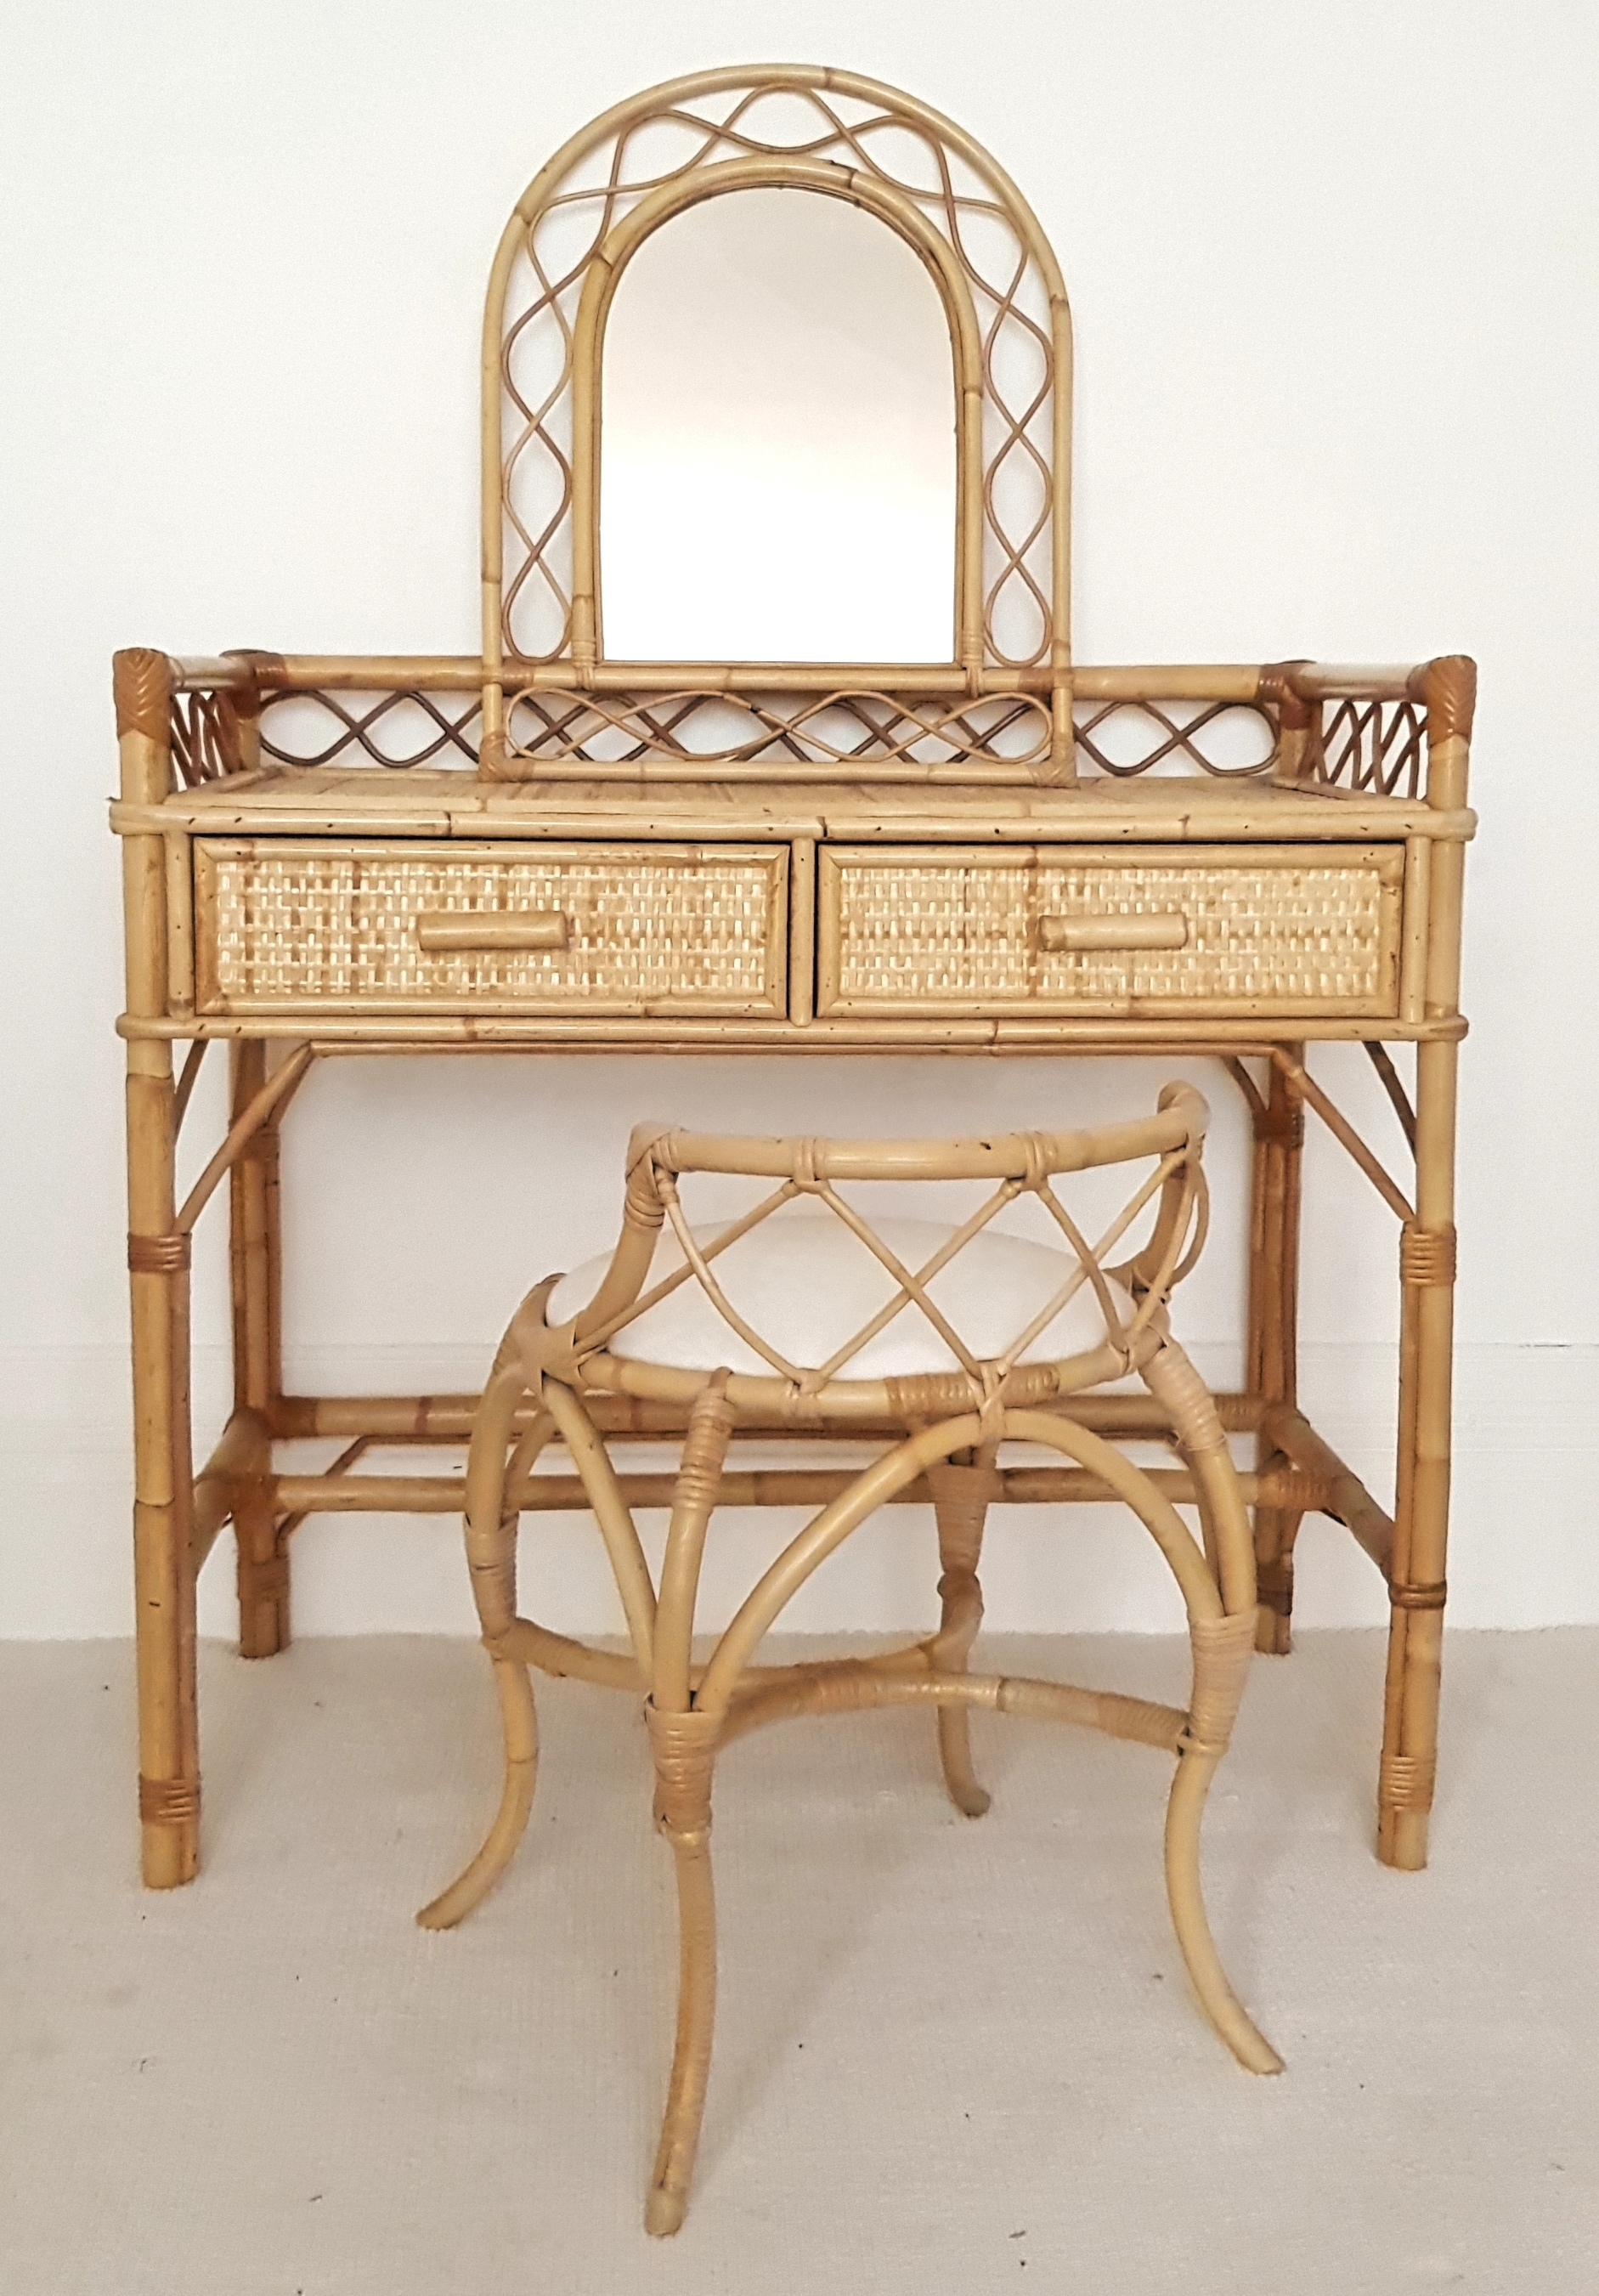 Dressing Table With Mirror And Stool: Vintage Bamboo & Rattan Dressing Table Set, Padded Stool